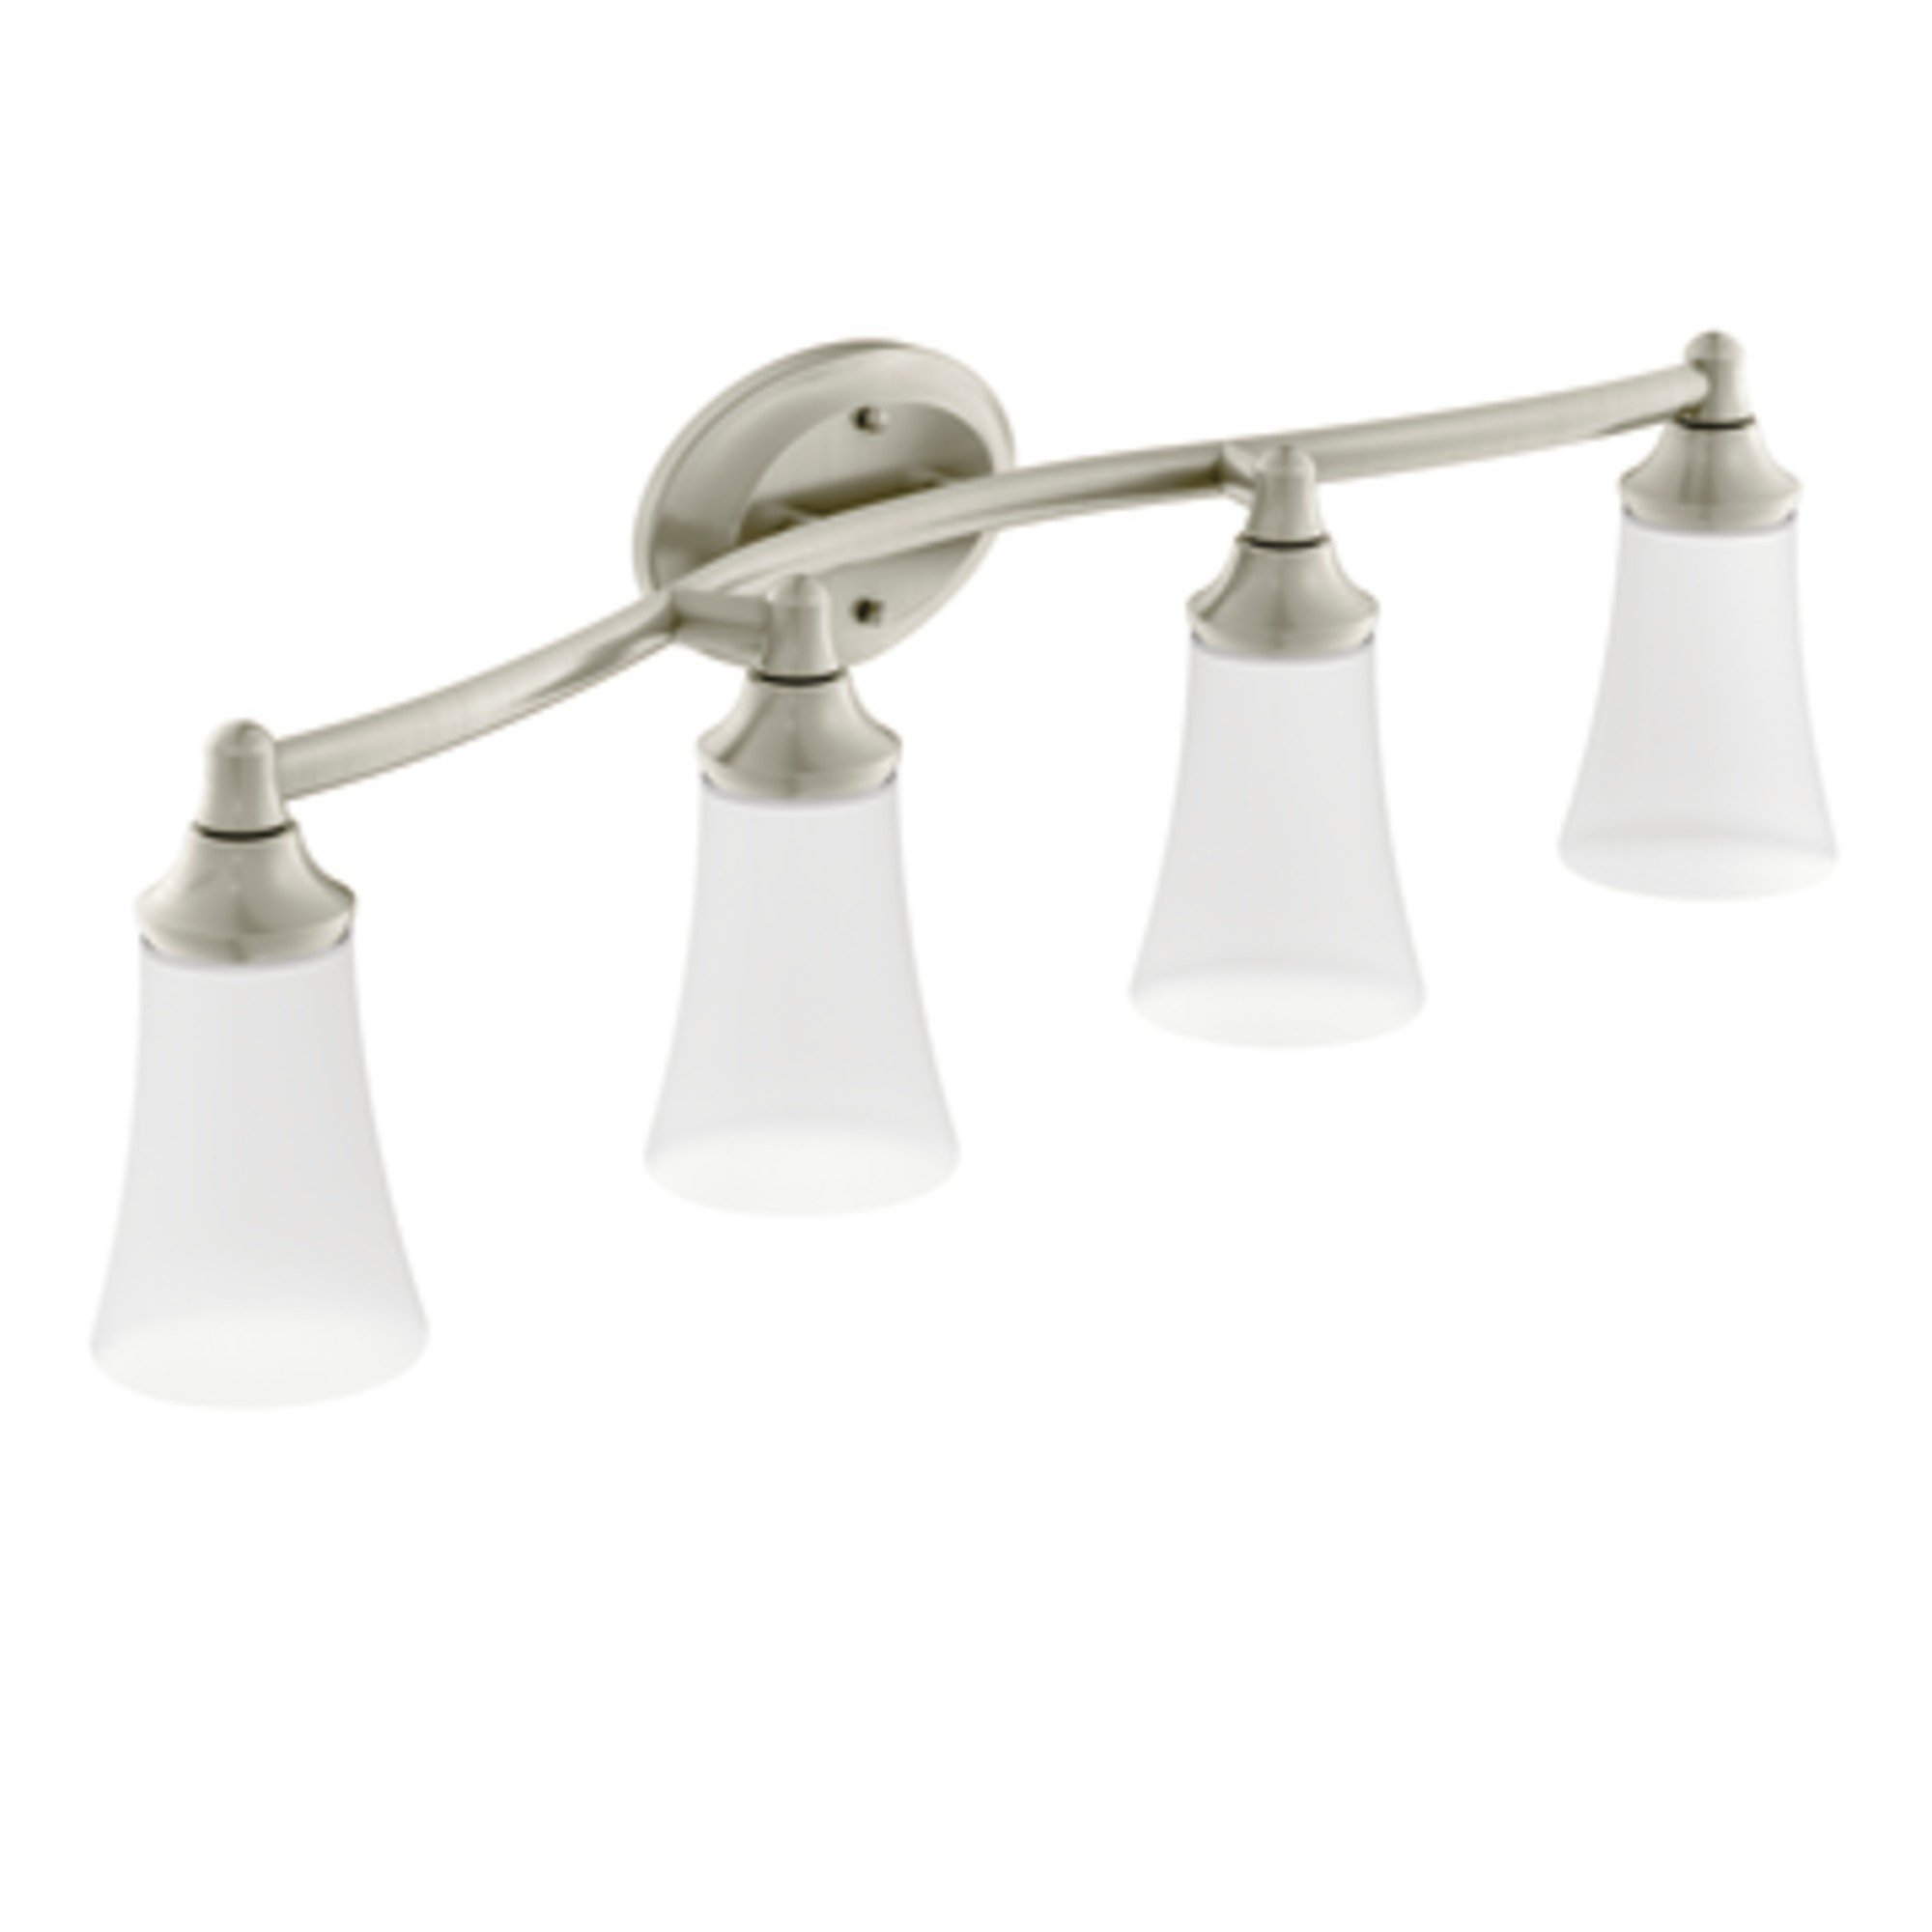 Moen YB2864BN Eva Bath Lighting, Brushed Nickel by Moen